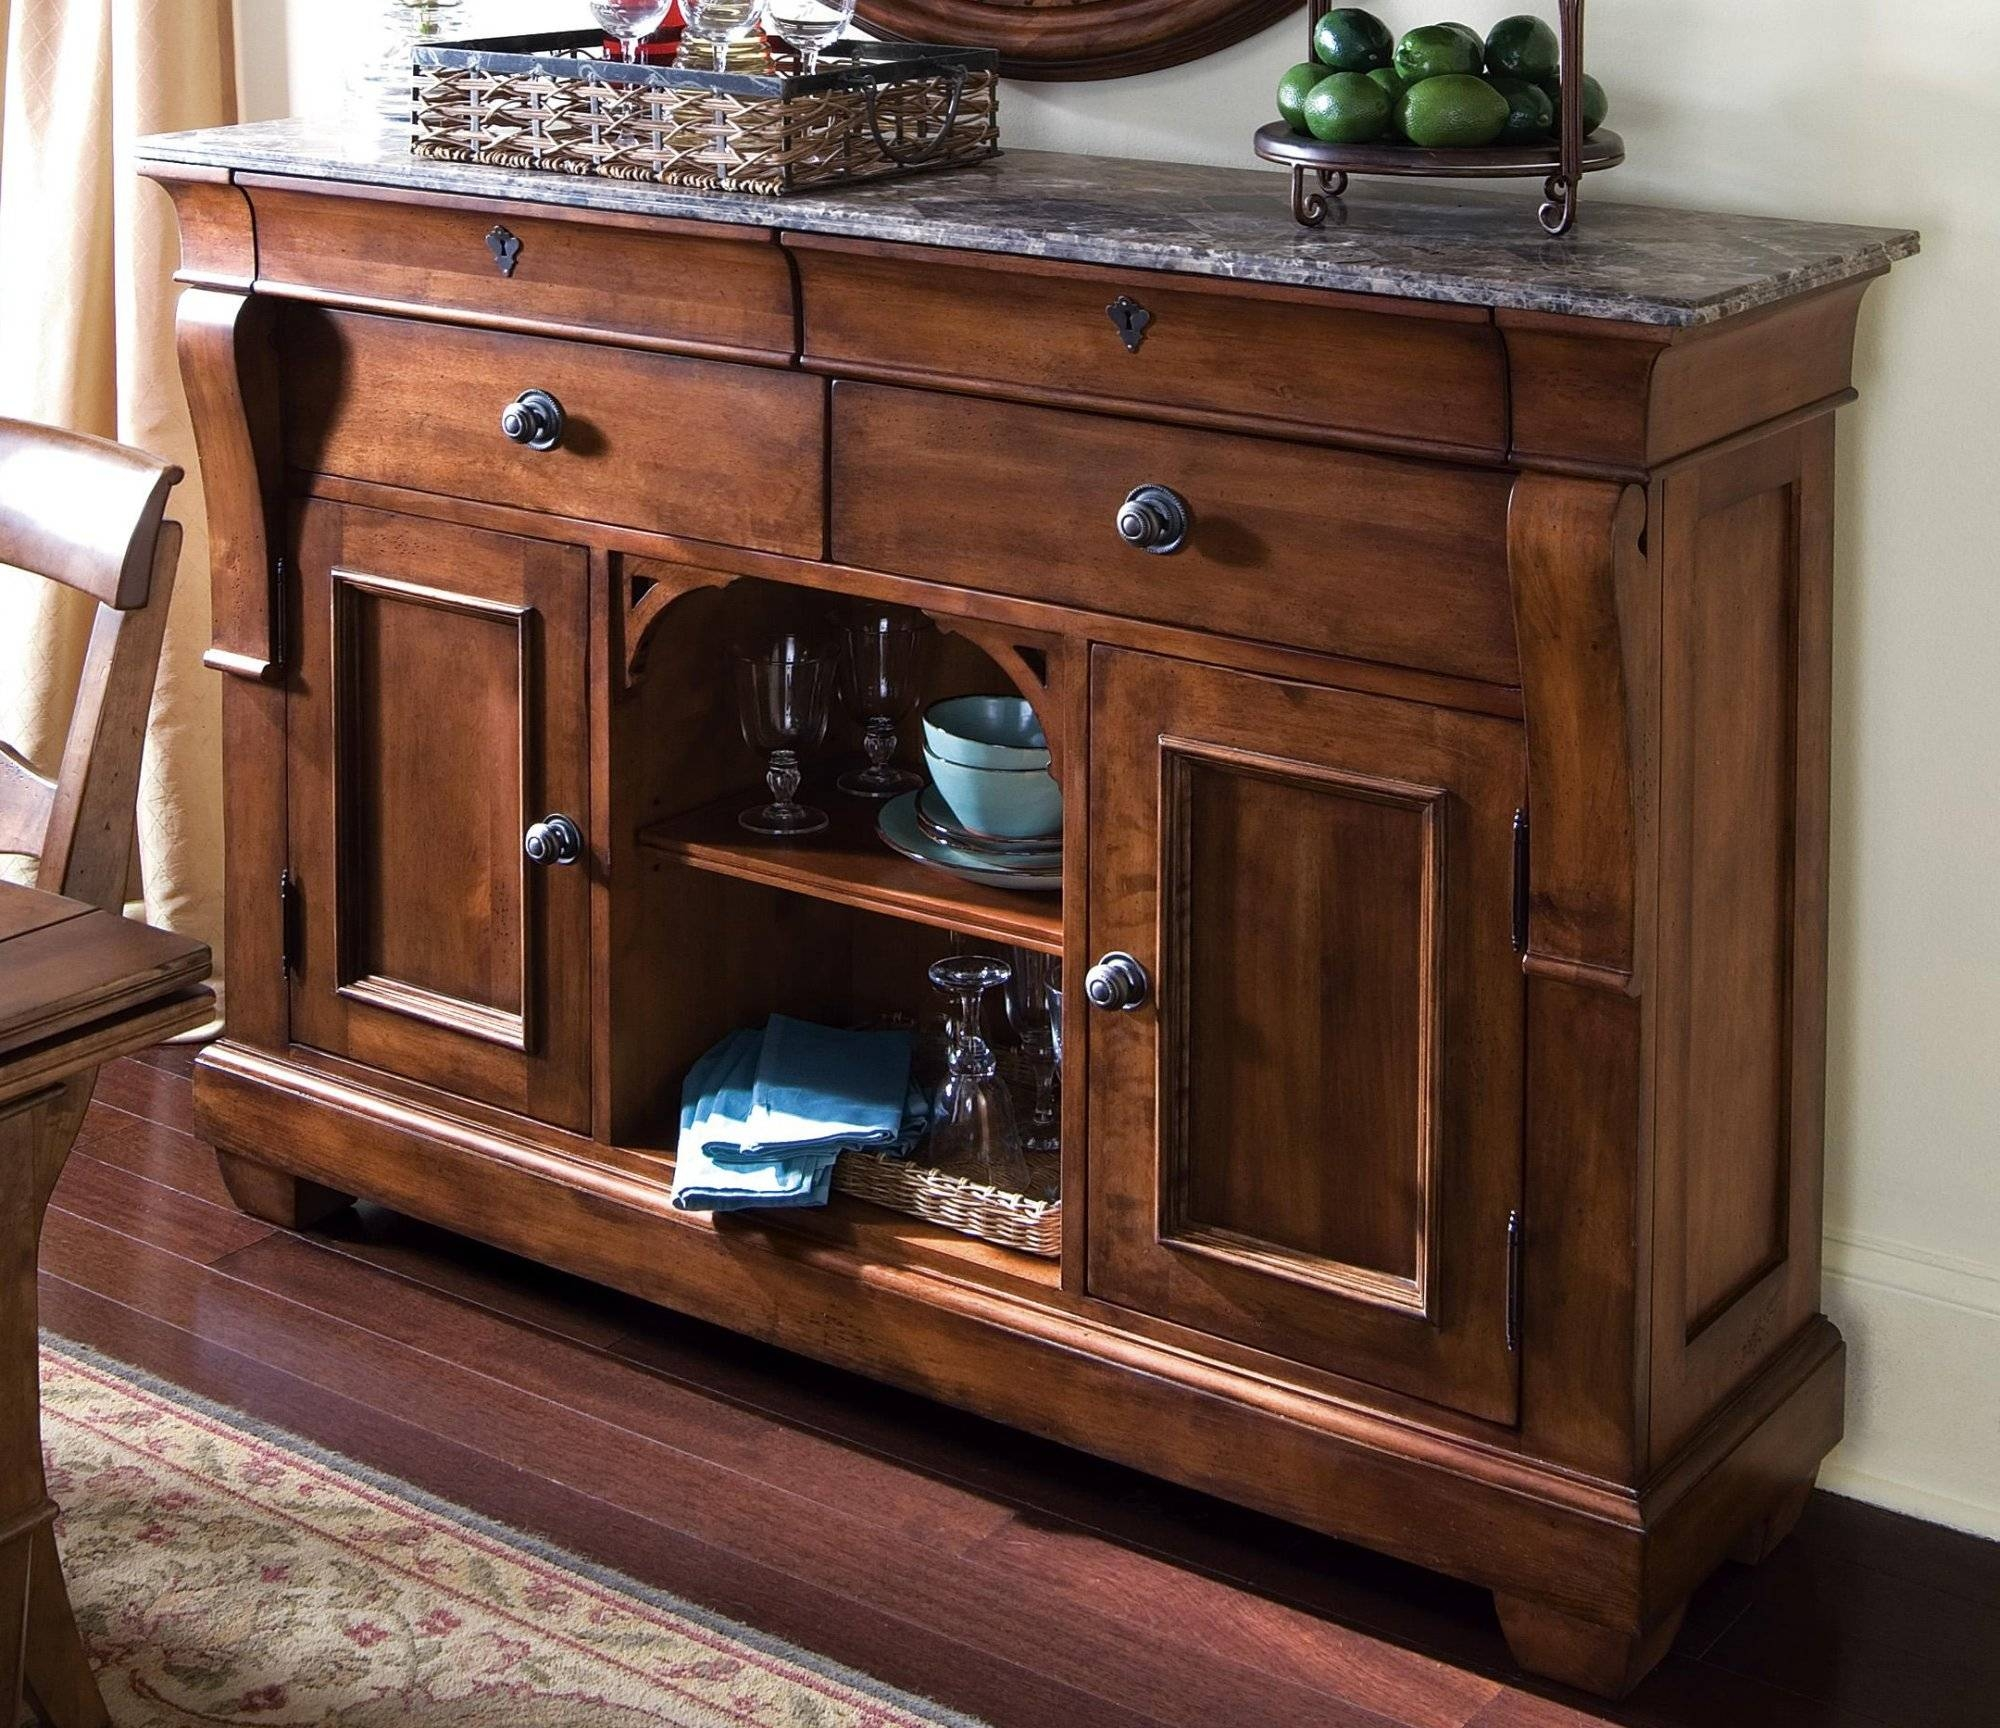 Tuscano Sideboard W/ Marble Top Pertaining To Sideboards With Marble Tops (View 2 of 15)